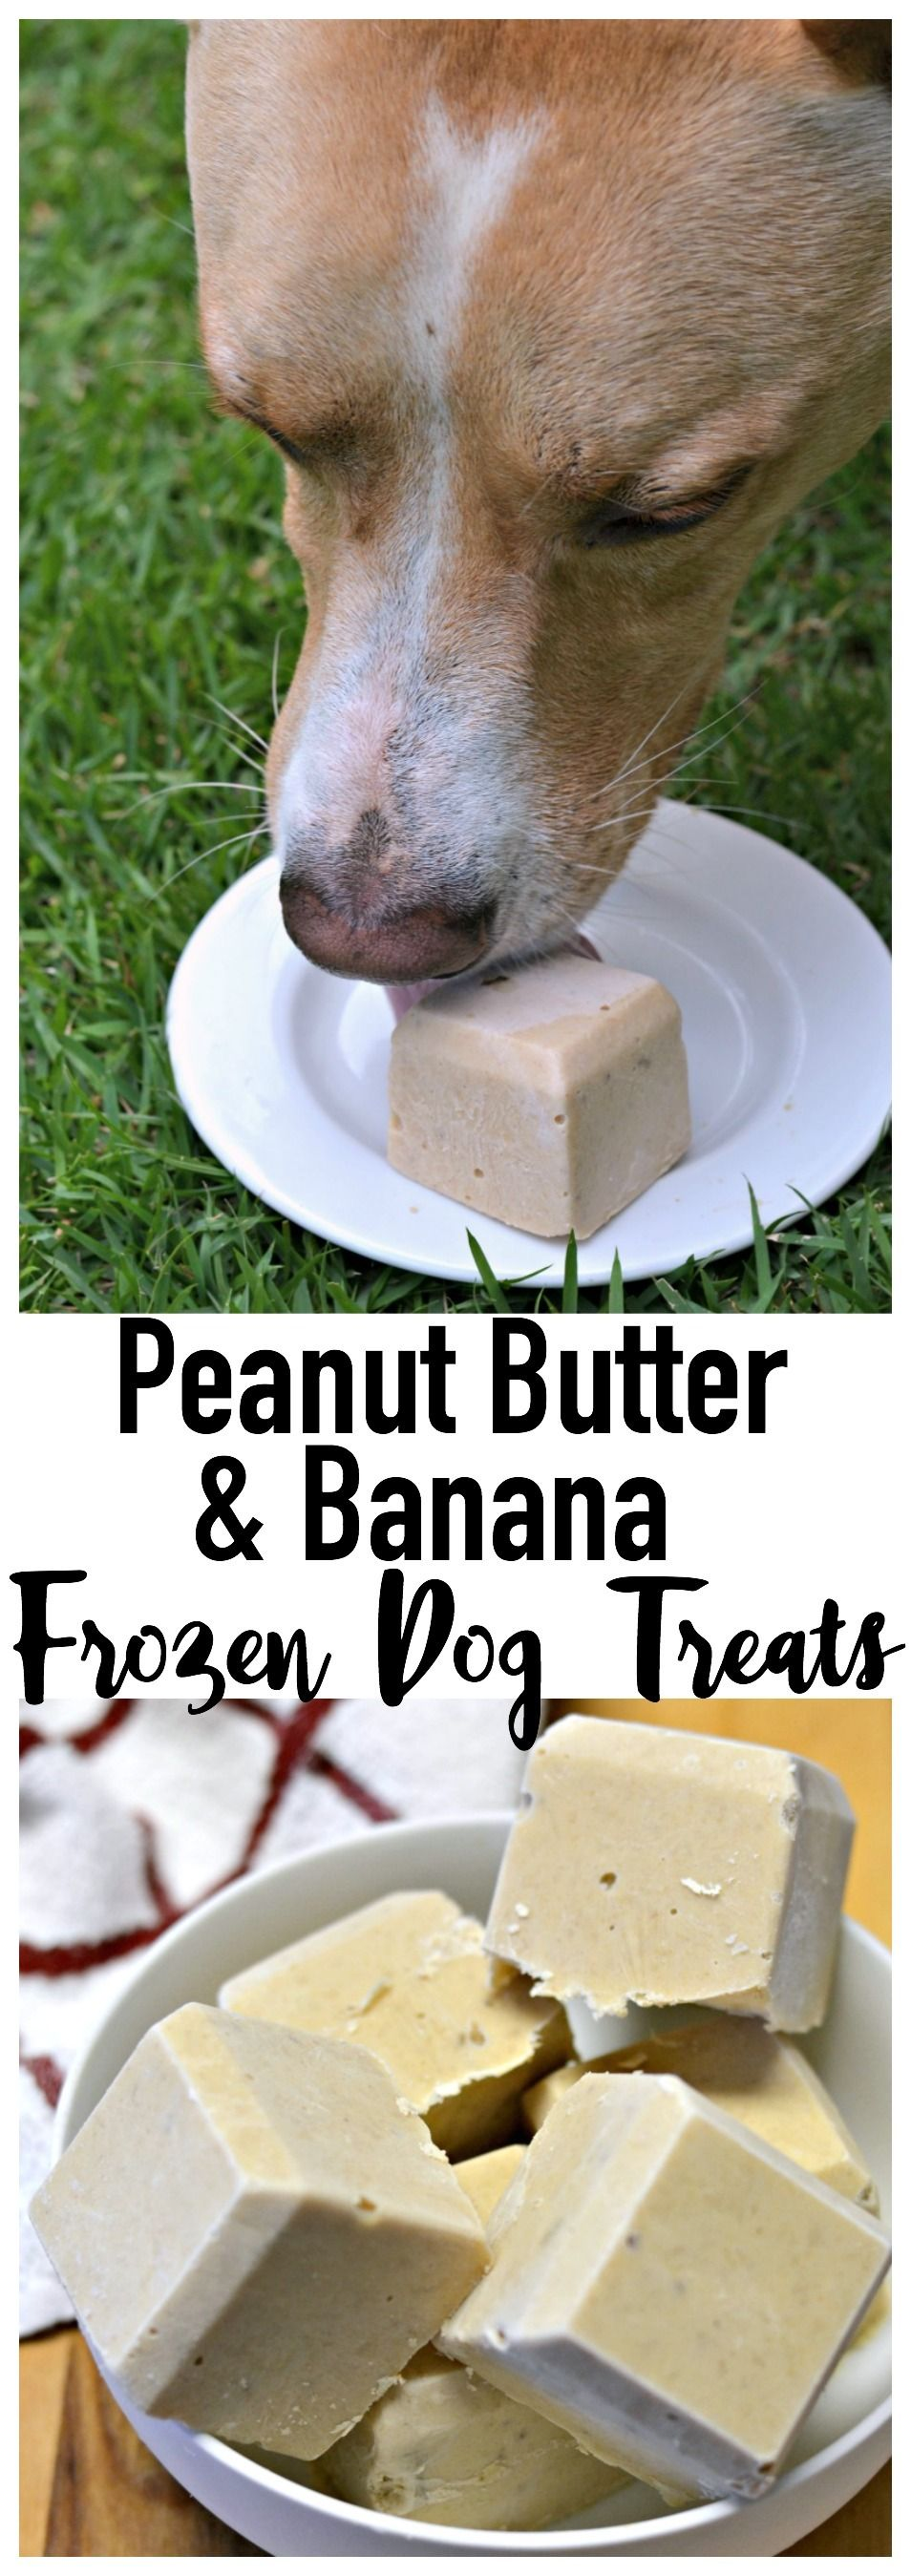 The weather is warming up! Keep your pooch nice and cool with a tasty frosty frozen dog treat! http://munchkinsandmilitary.com/2016/06/peanut-butter-banana-frozen-dog-treats.html?utm_campaign=coschedule&utm_source=pinterest&utm_medium=Alex%20%7C%20Munchkins%20and%20Military&utm_content=Peanut%20Butter%20and%20Banana%20Frozen%20Dog%20Treats